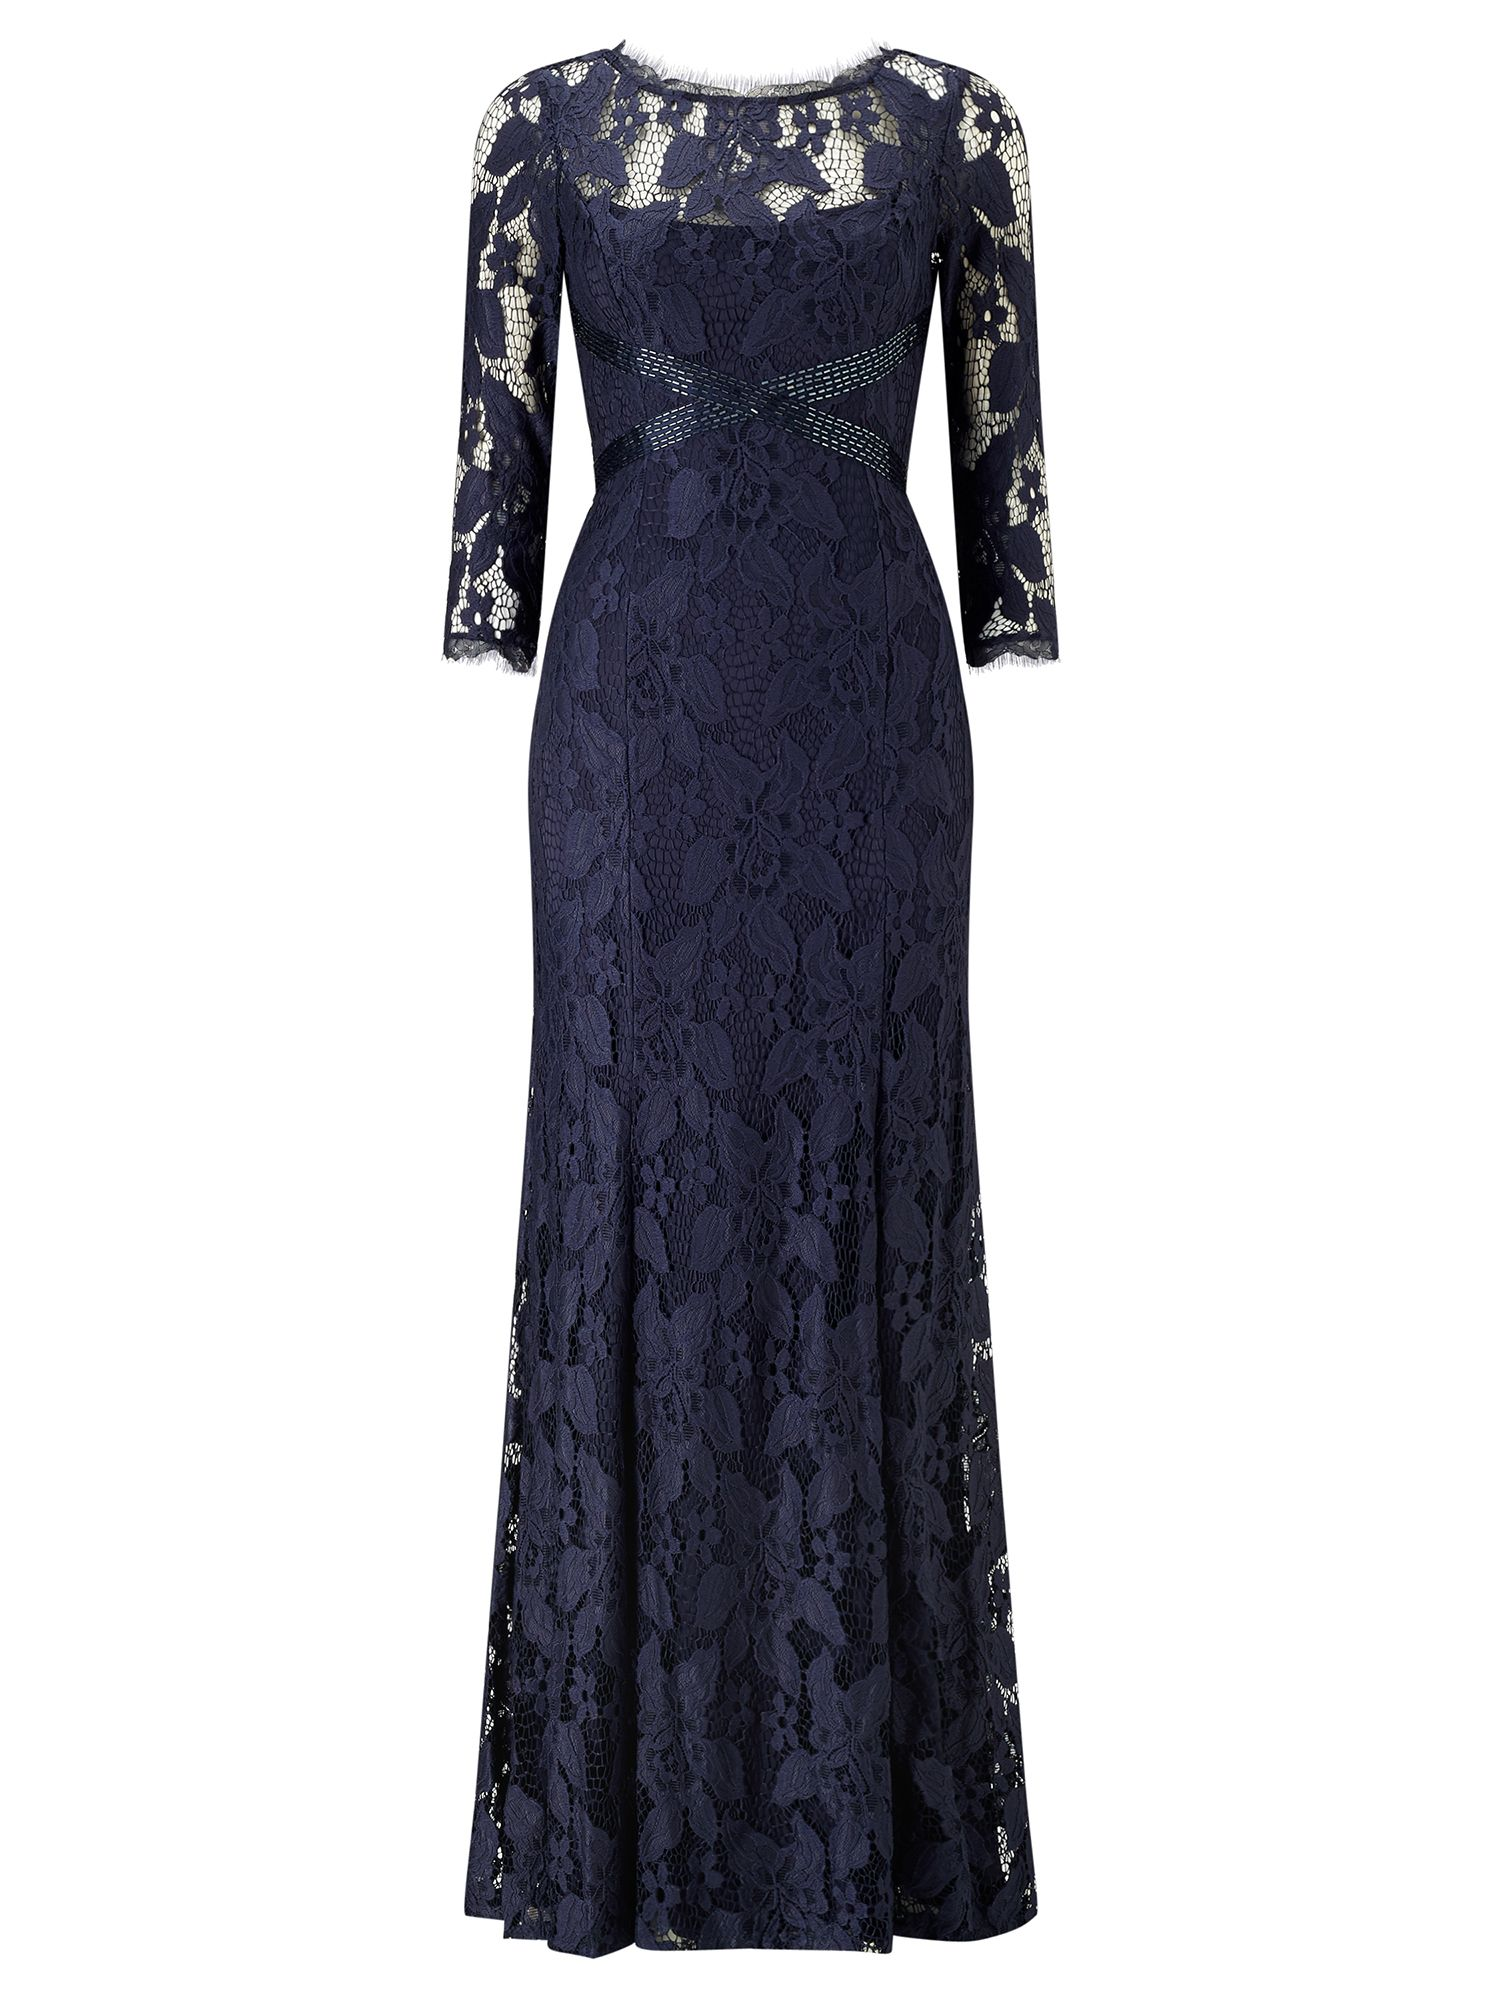 Adrianna Papell Long sleeve lace evening dress Navy